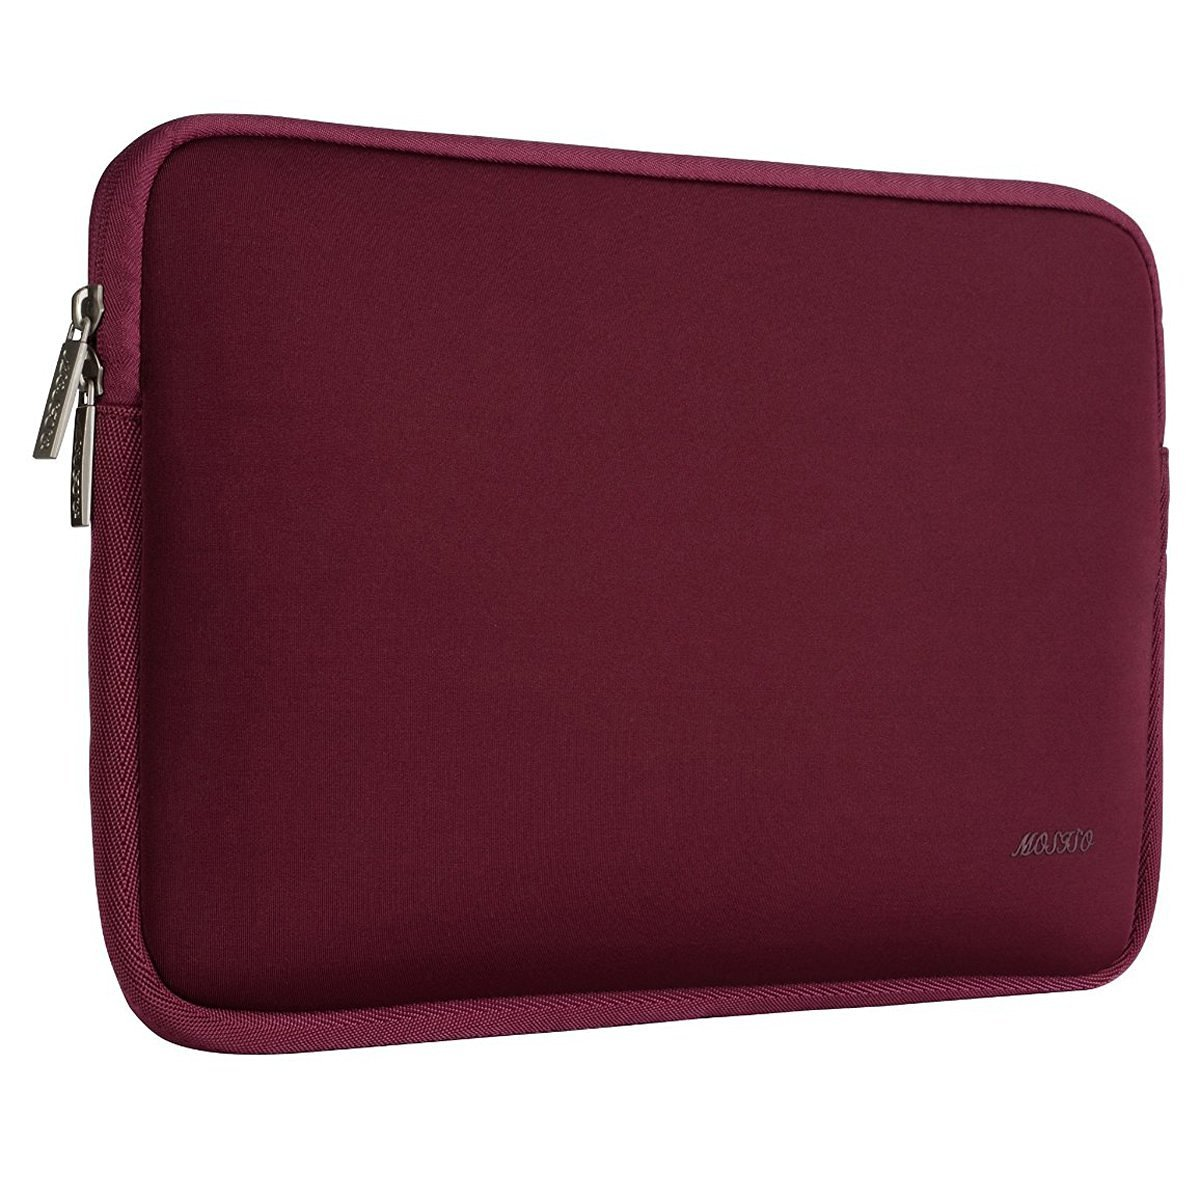 MOSISO Water Repellent Lycra Sleeve Bag Cover Compatible 13-13.3 Inch Laptop with Small Case Compatible MacBook Charger, Wine Red by MOSISO (Image #5)